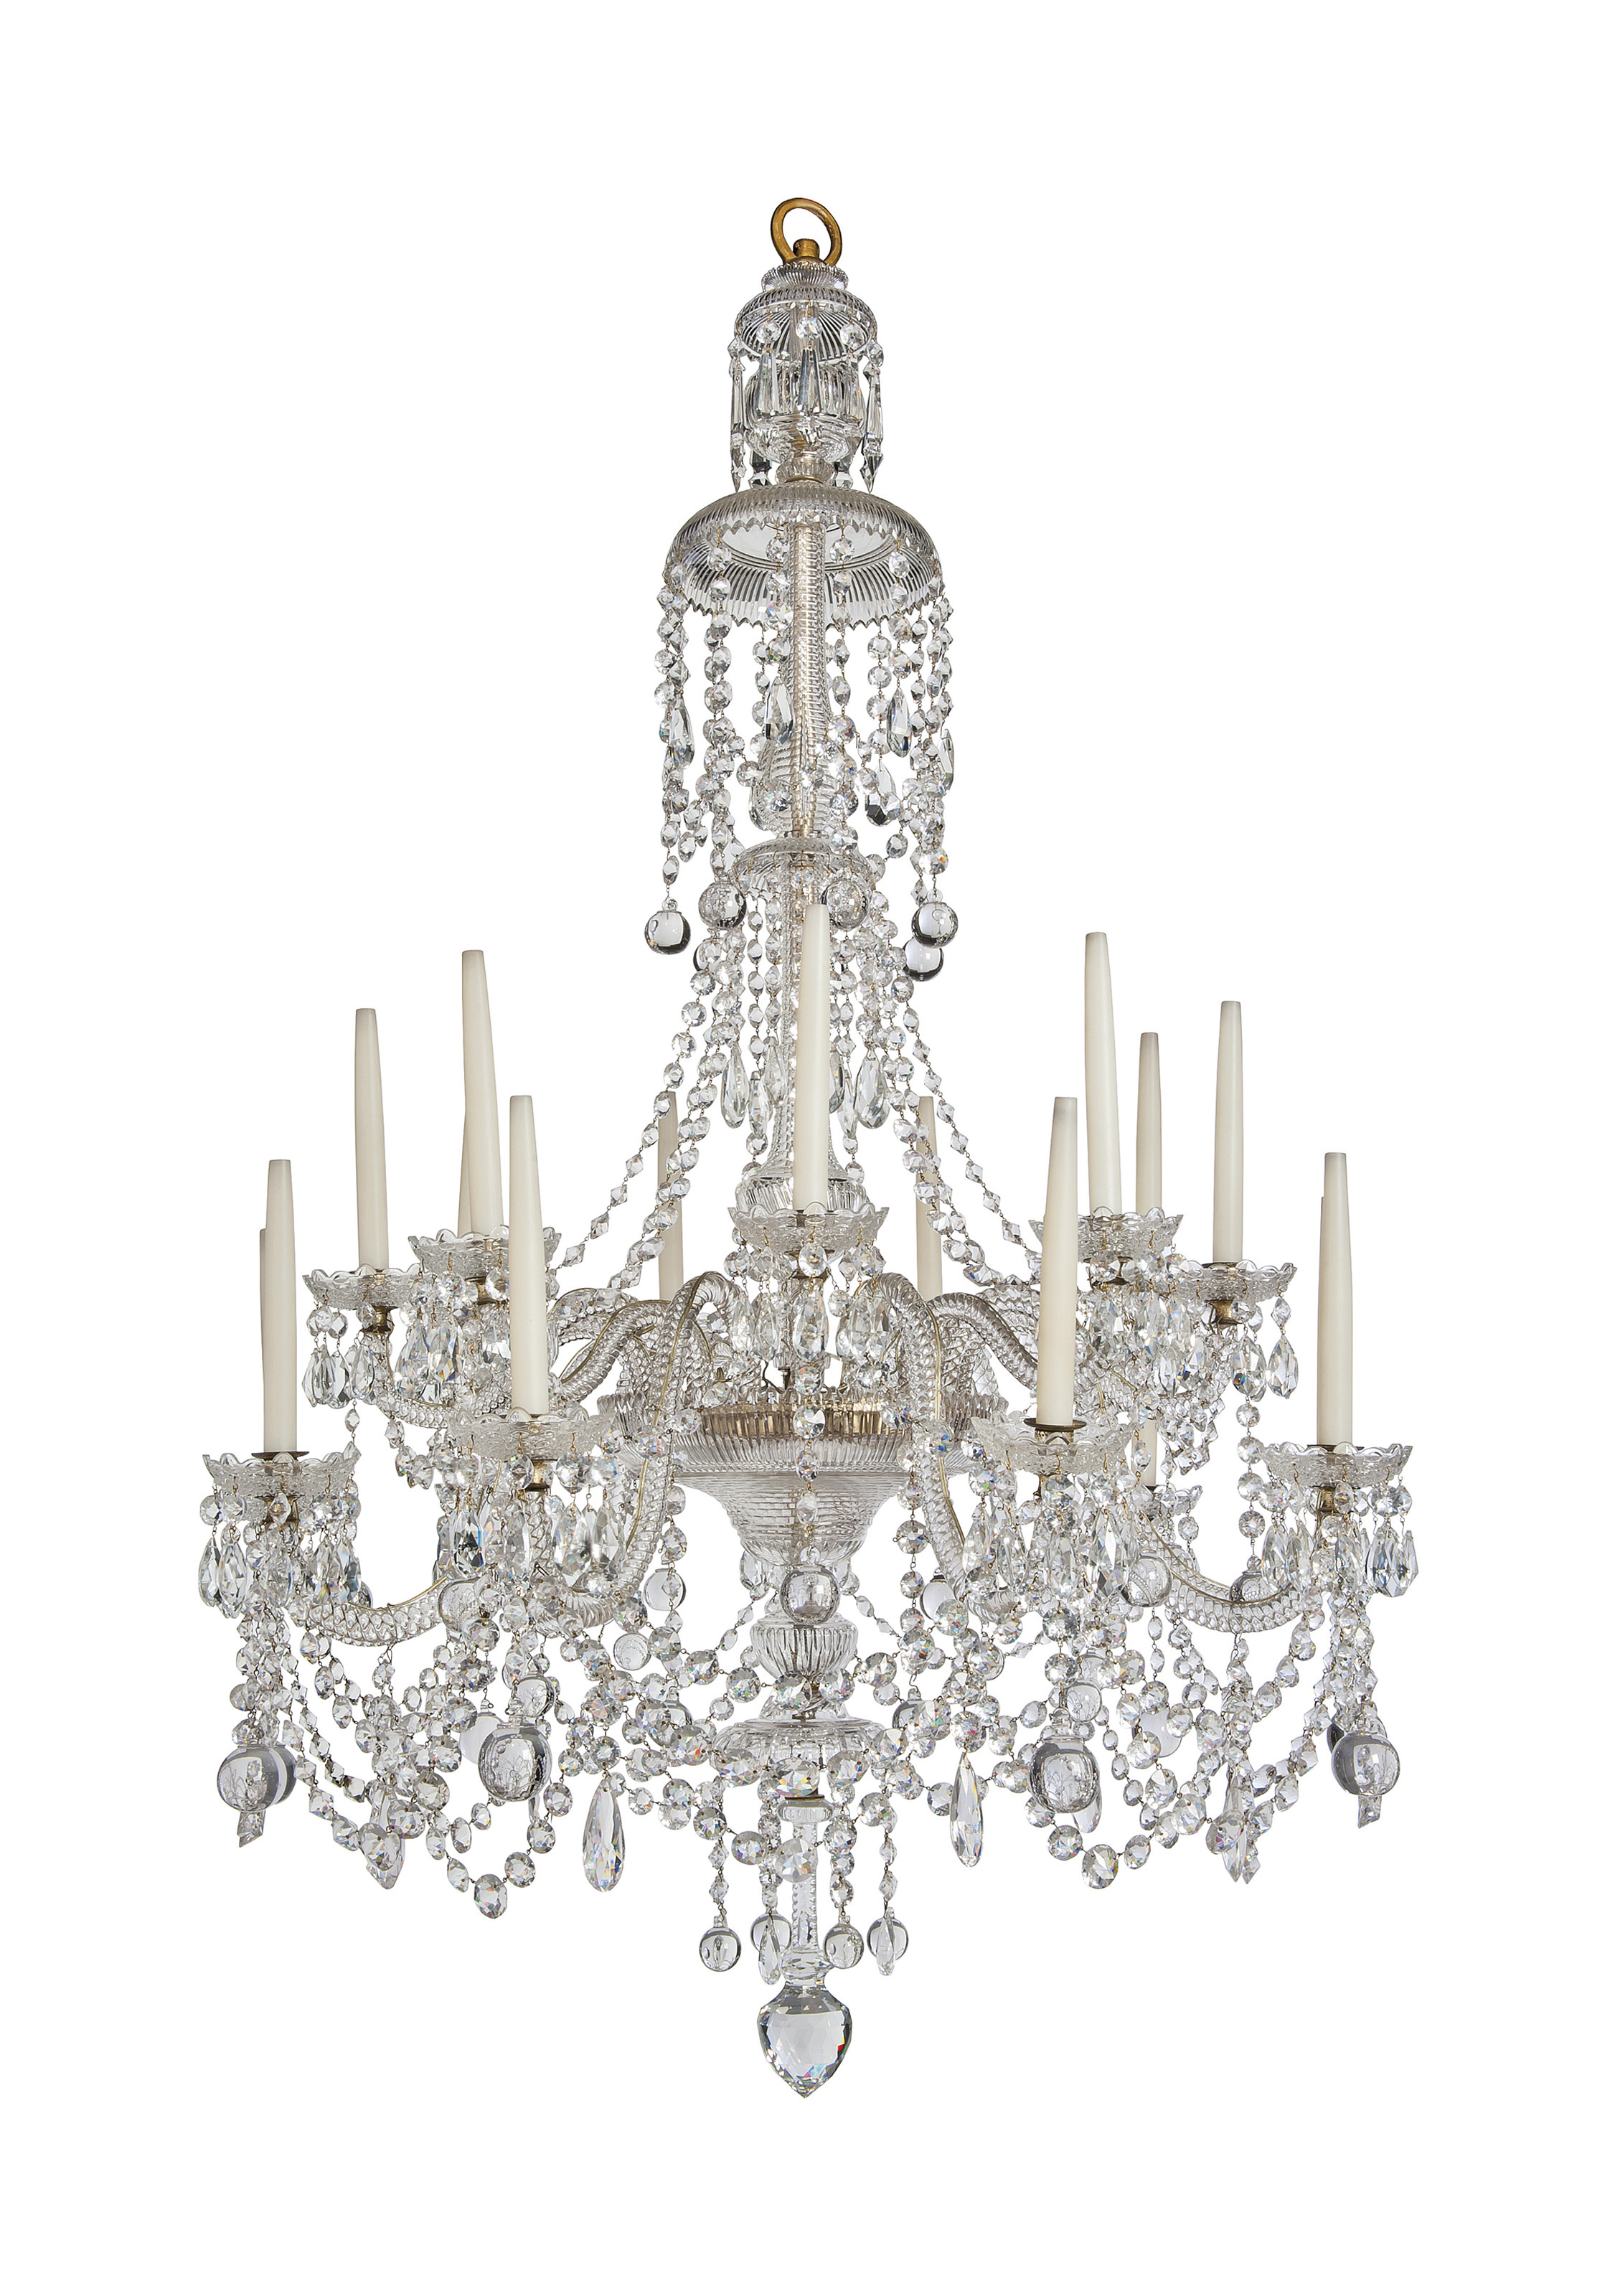 A VICTORIAN CUT-GLASS EIGHTEEN-LIGHT CHANDELIER